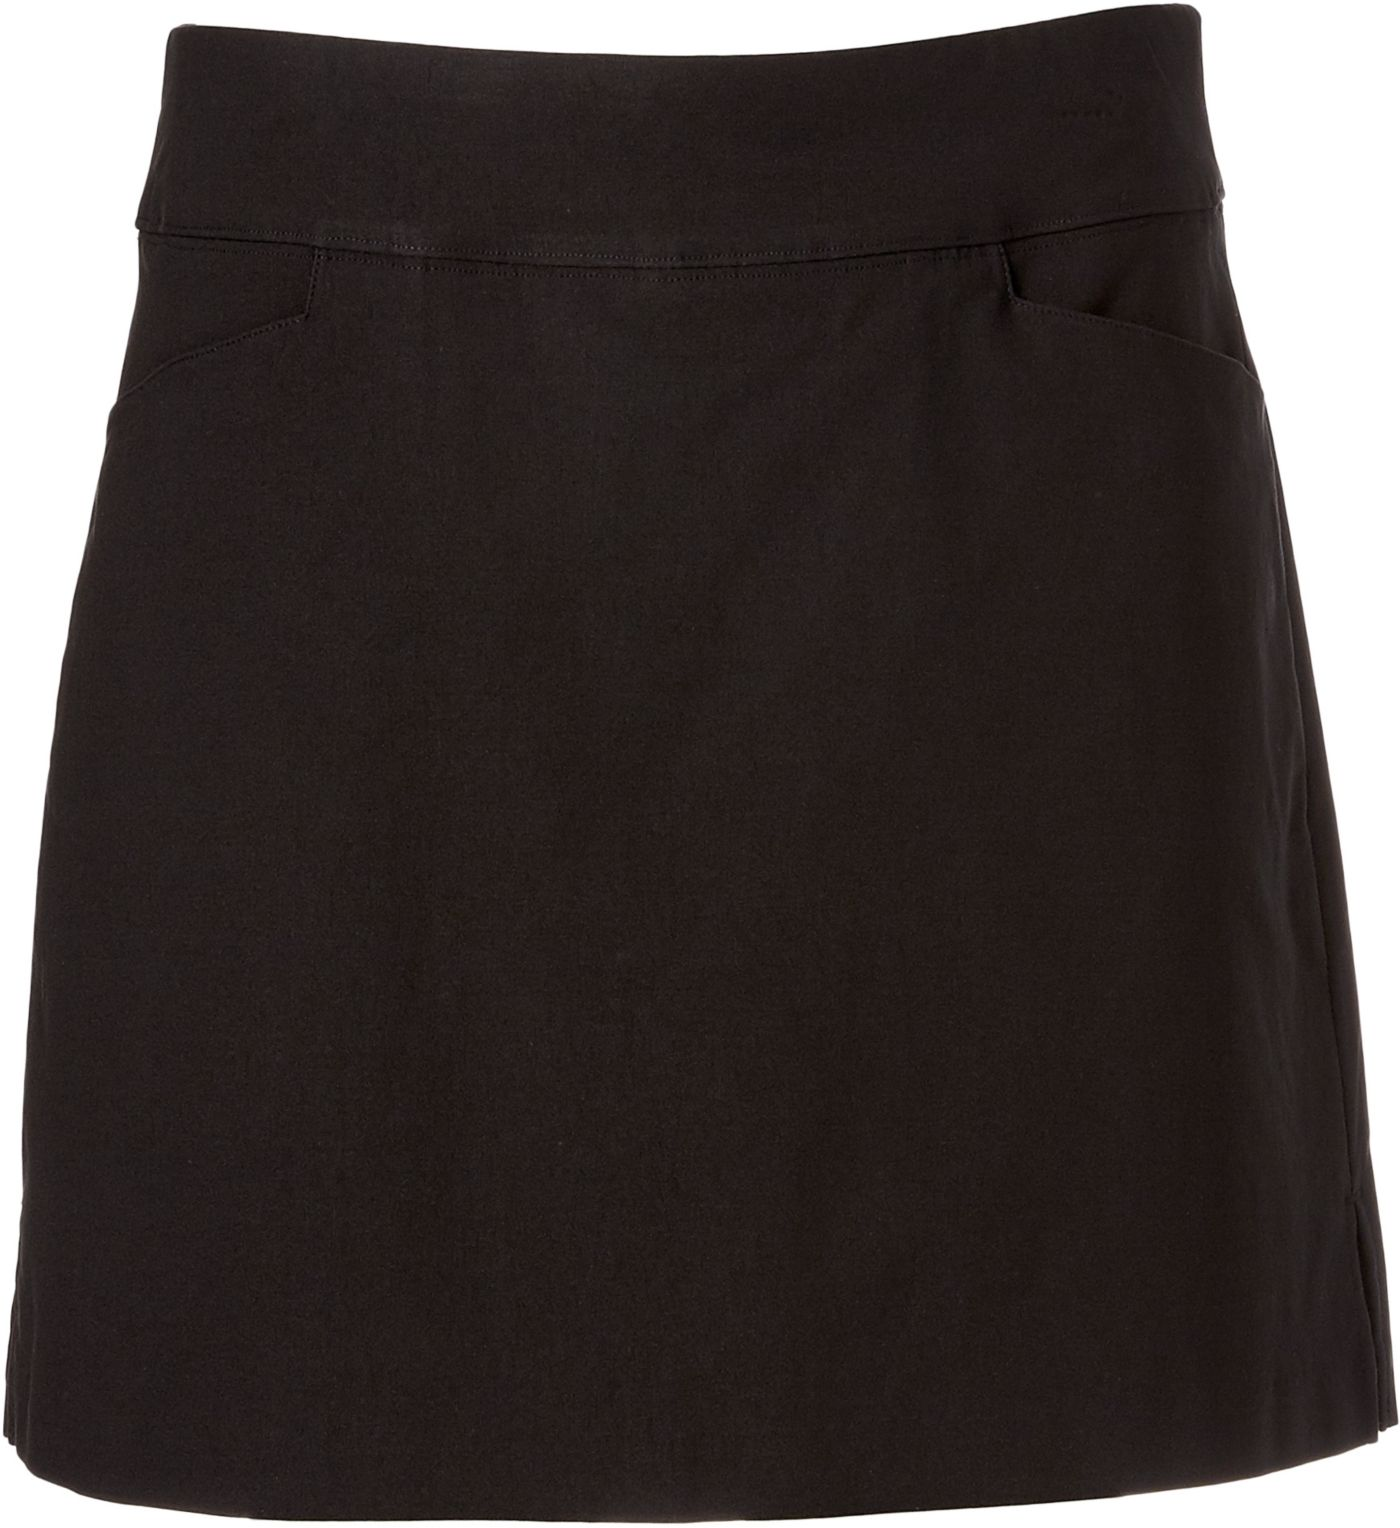 Lady Hagen Easy Shaper Collection Pull On Skort - Extended Sizes